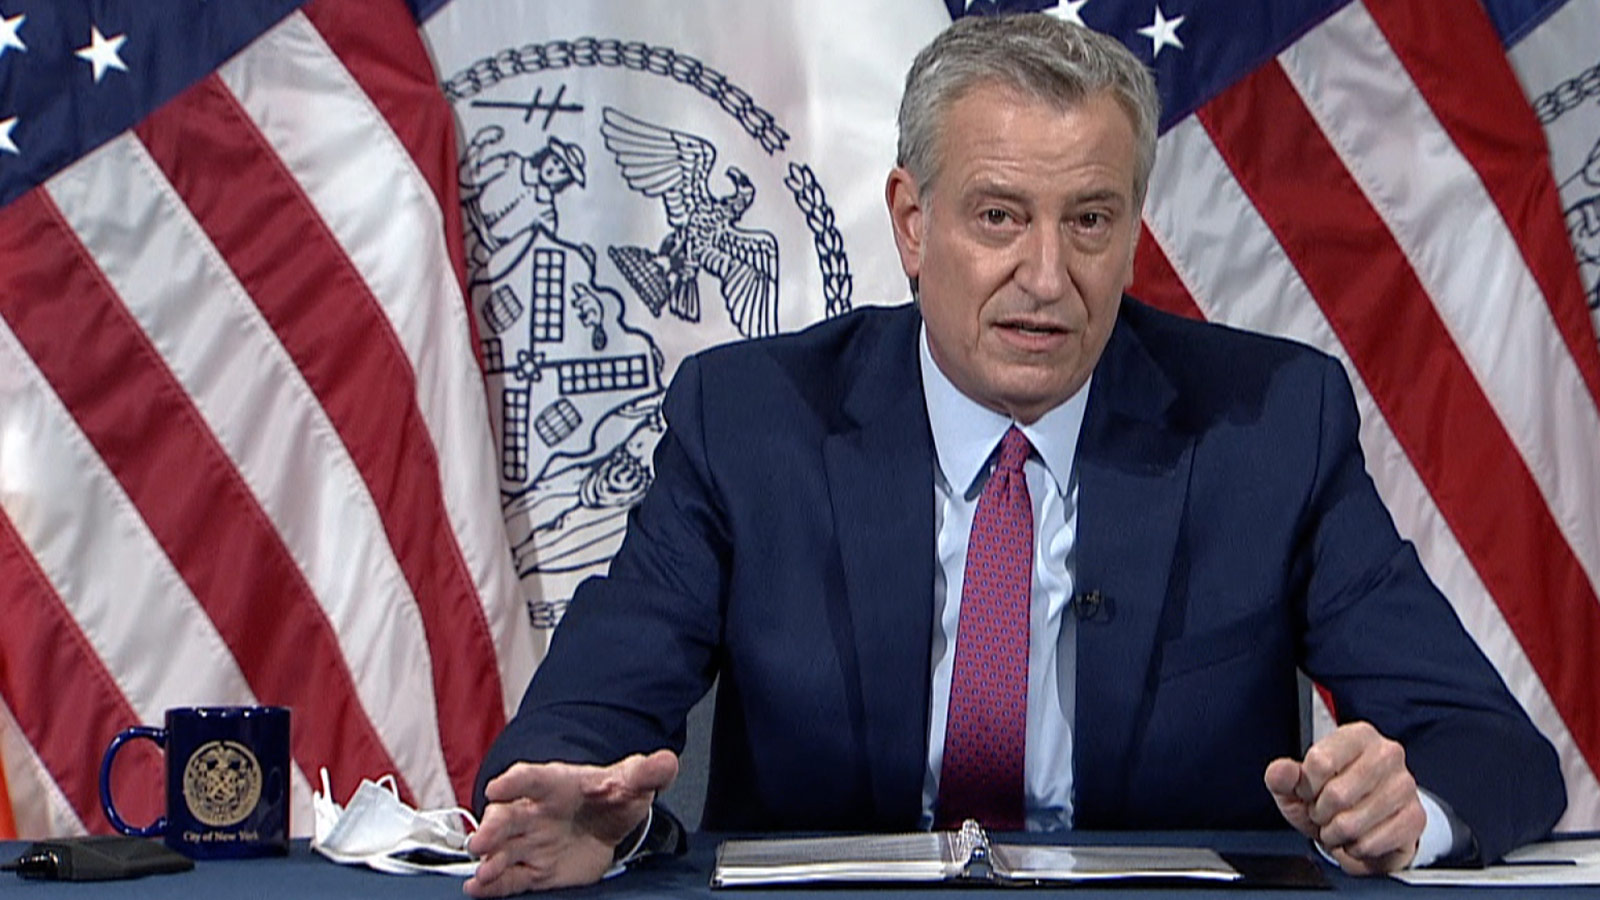 New York City Mayor Bill de Blasio speaks during a press conference on Tuesday.